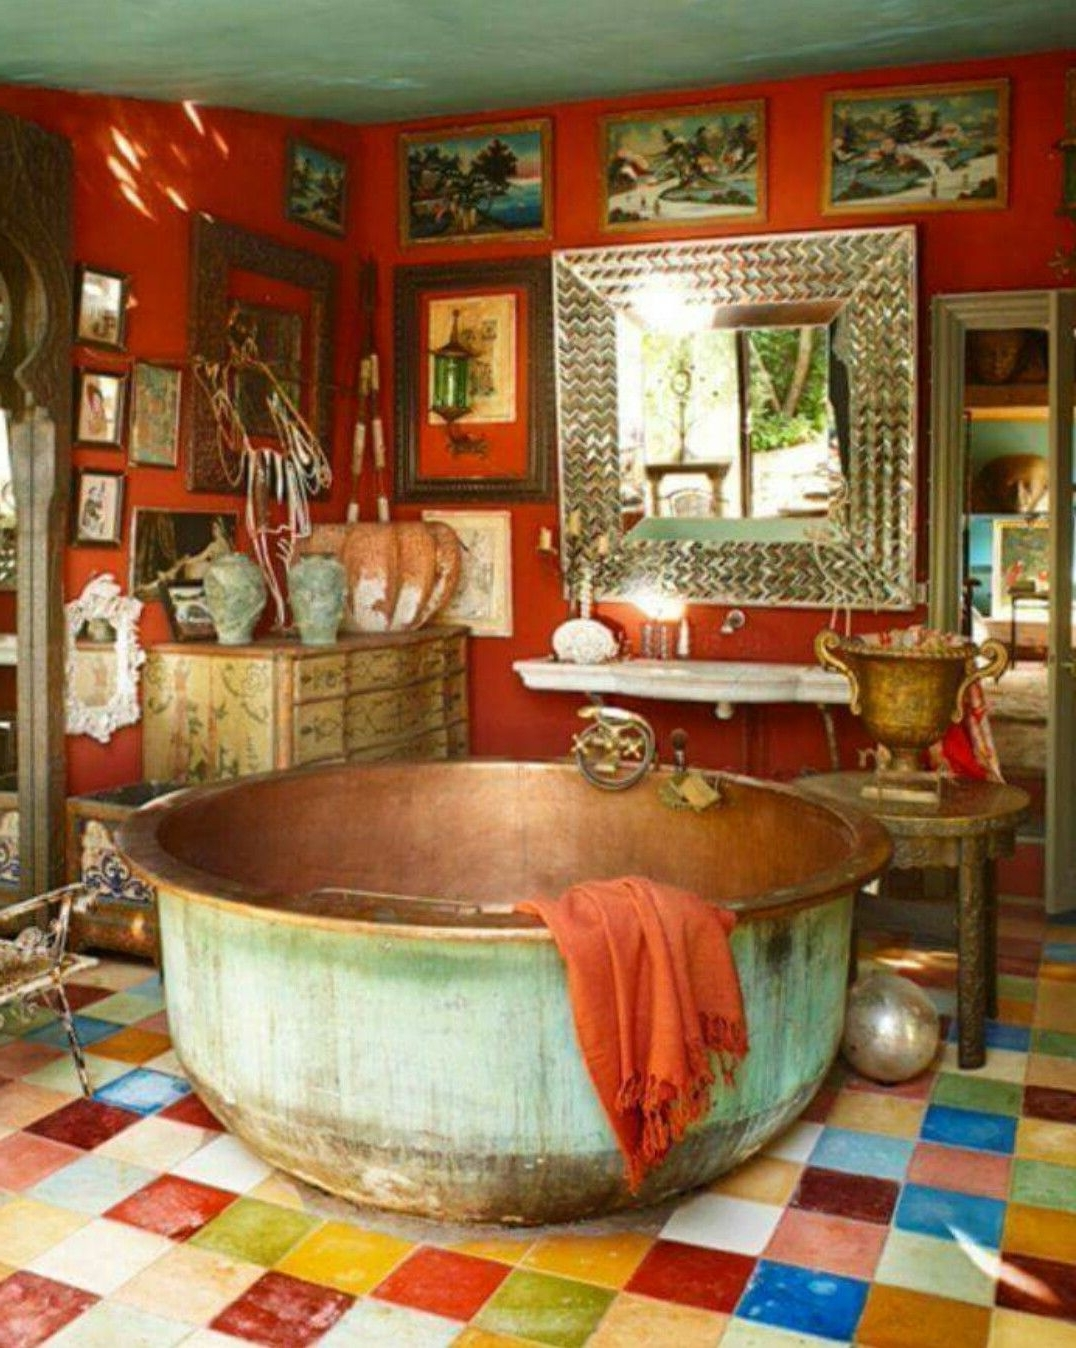 Pin On Home Sweet Home 40+ Gypsy Bathroom Inspirations